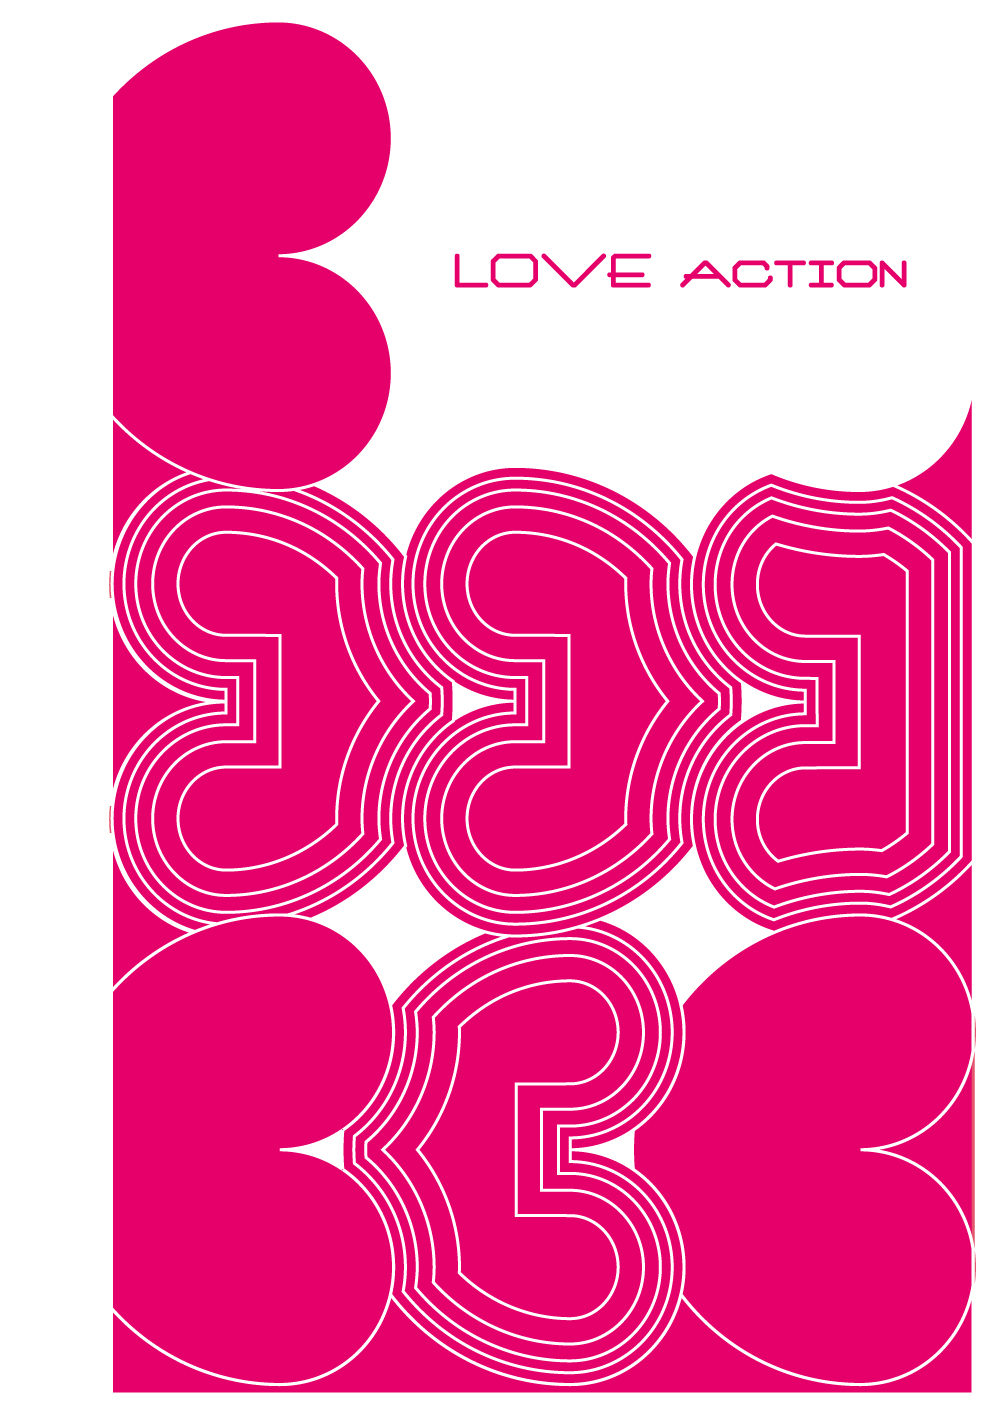 loveaction